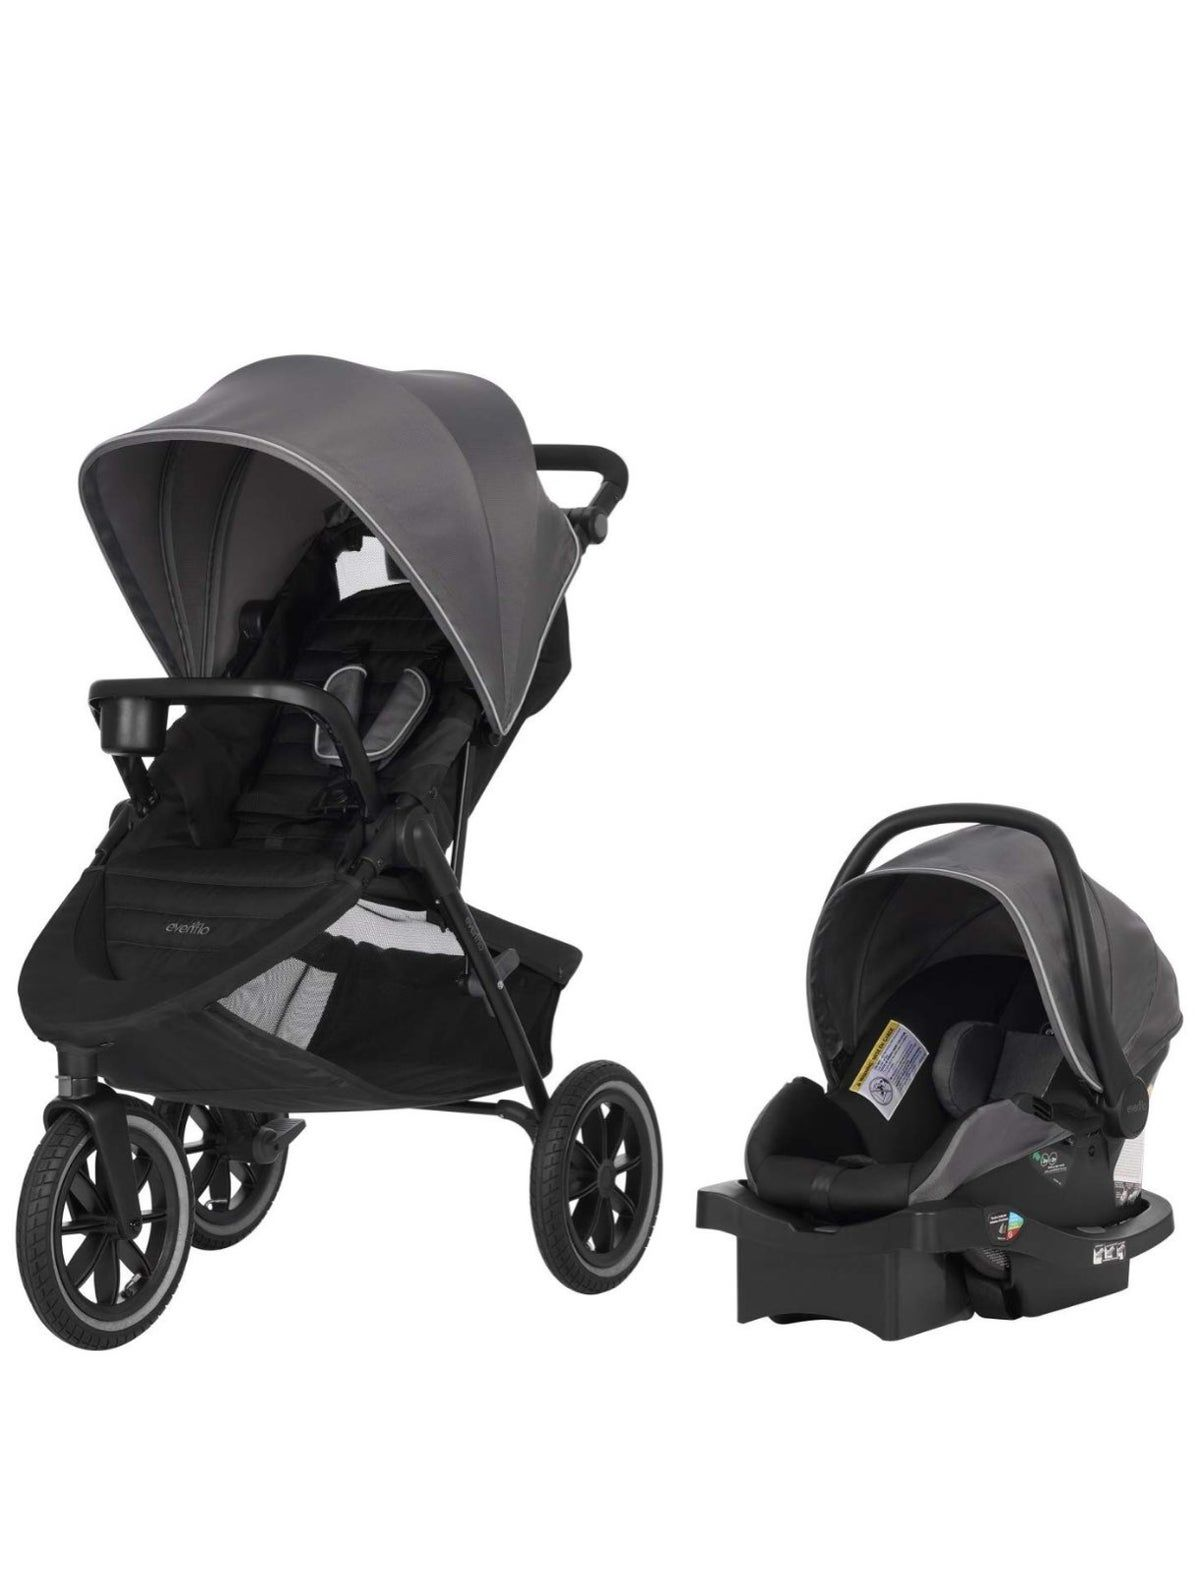 19++ Evenflo stroller cleaning instructions info